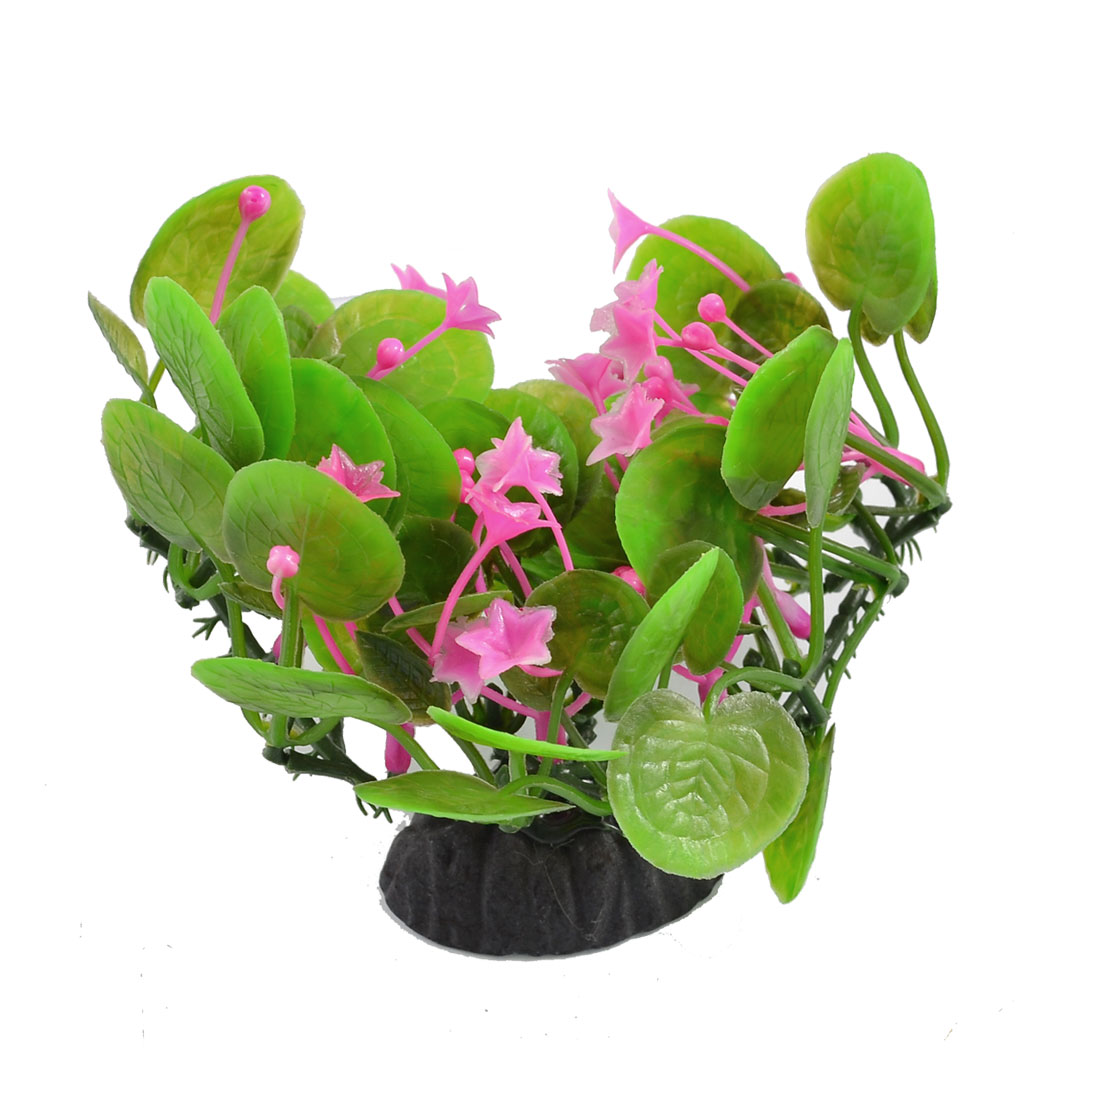 "Fuchsia Green 3.9"" Plastic Plants Decor Aquarium Tank Aquascape"